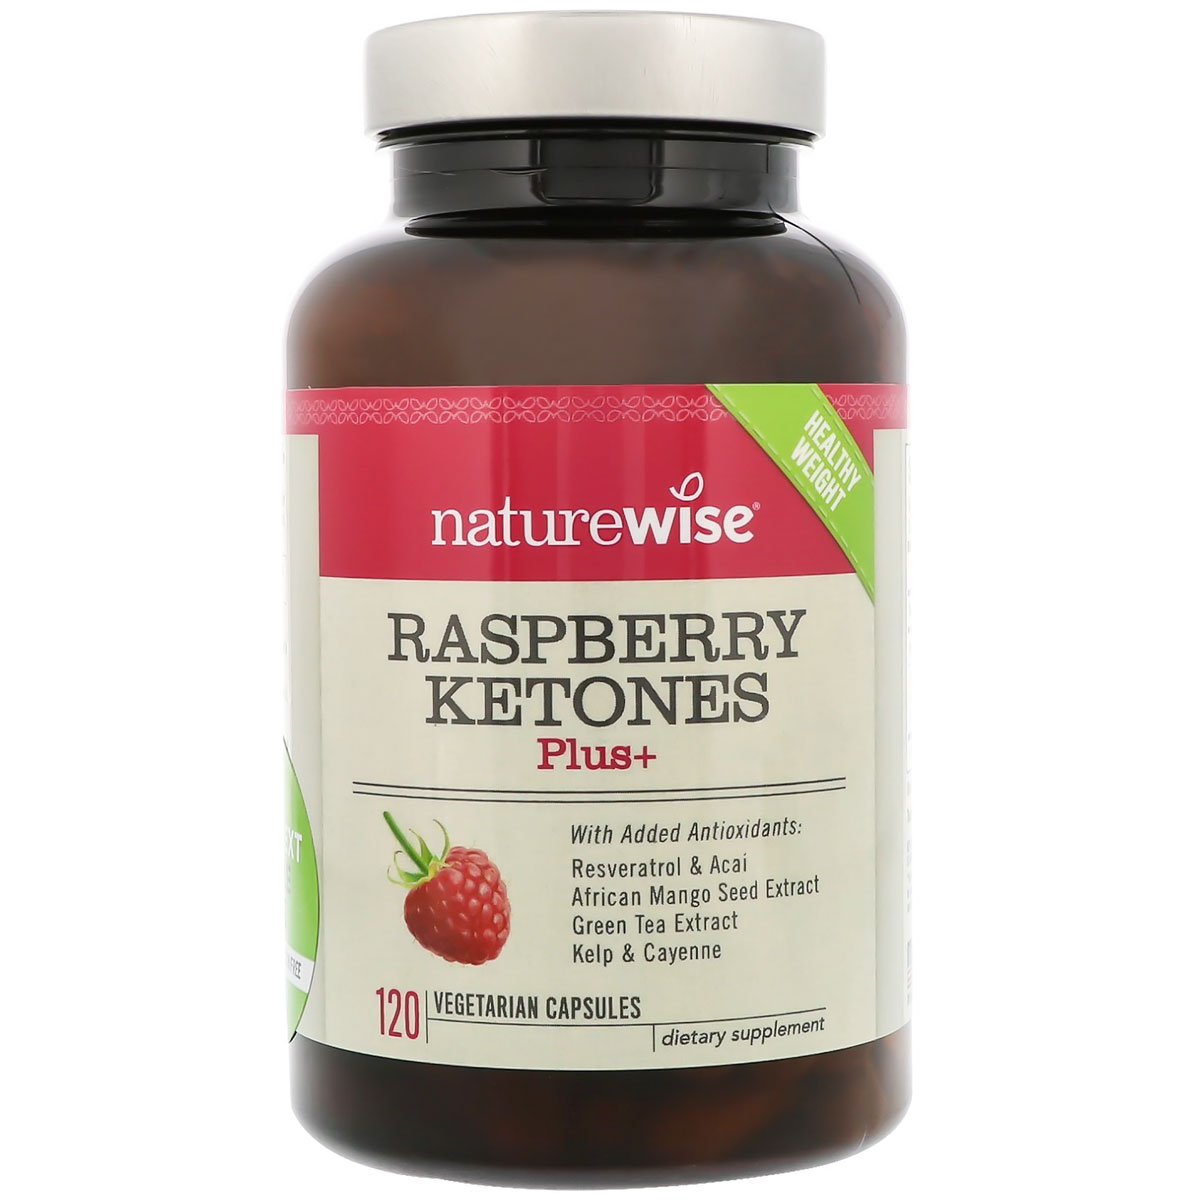 Image of a bottle of NatureWise Raspberry Ketones